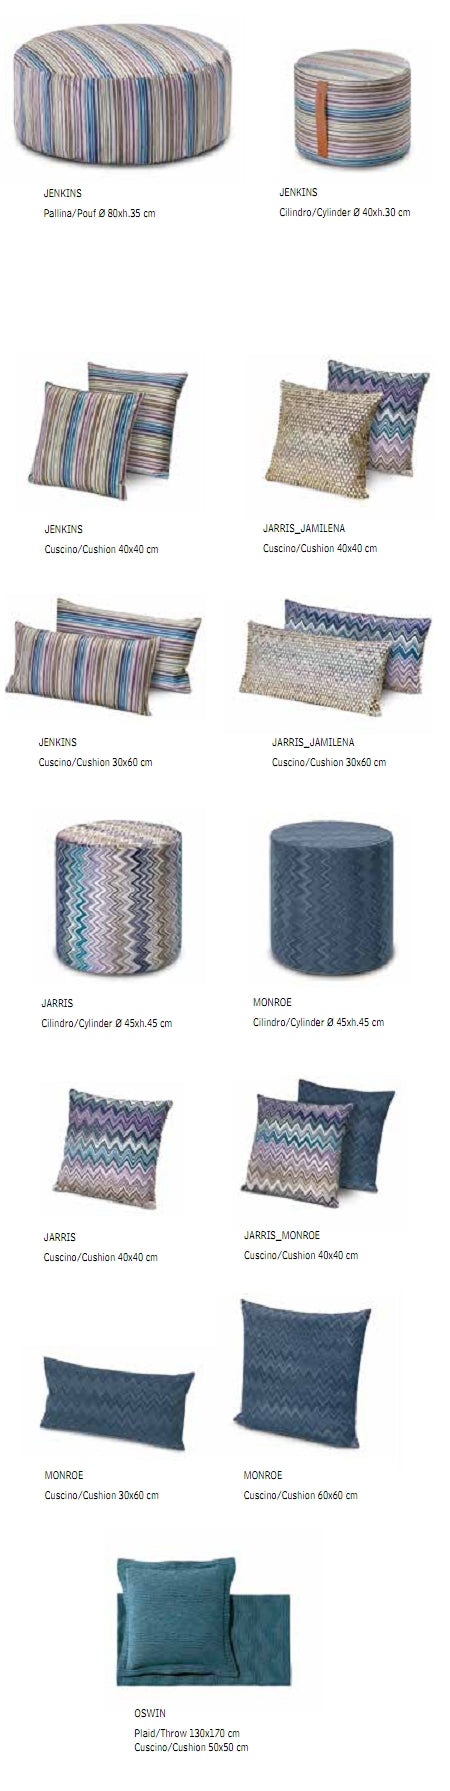 Missoni Cushion and Footstool Collection product specs